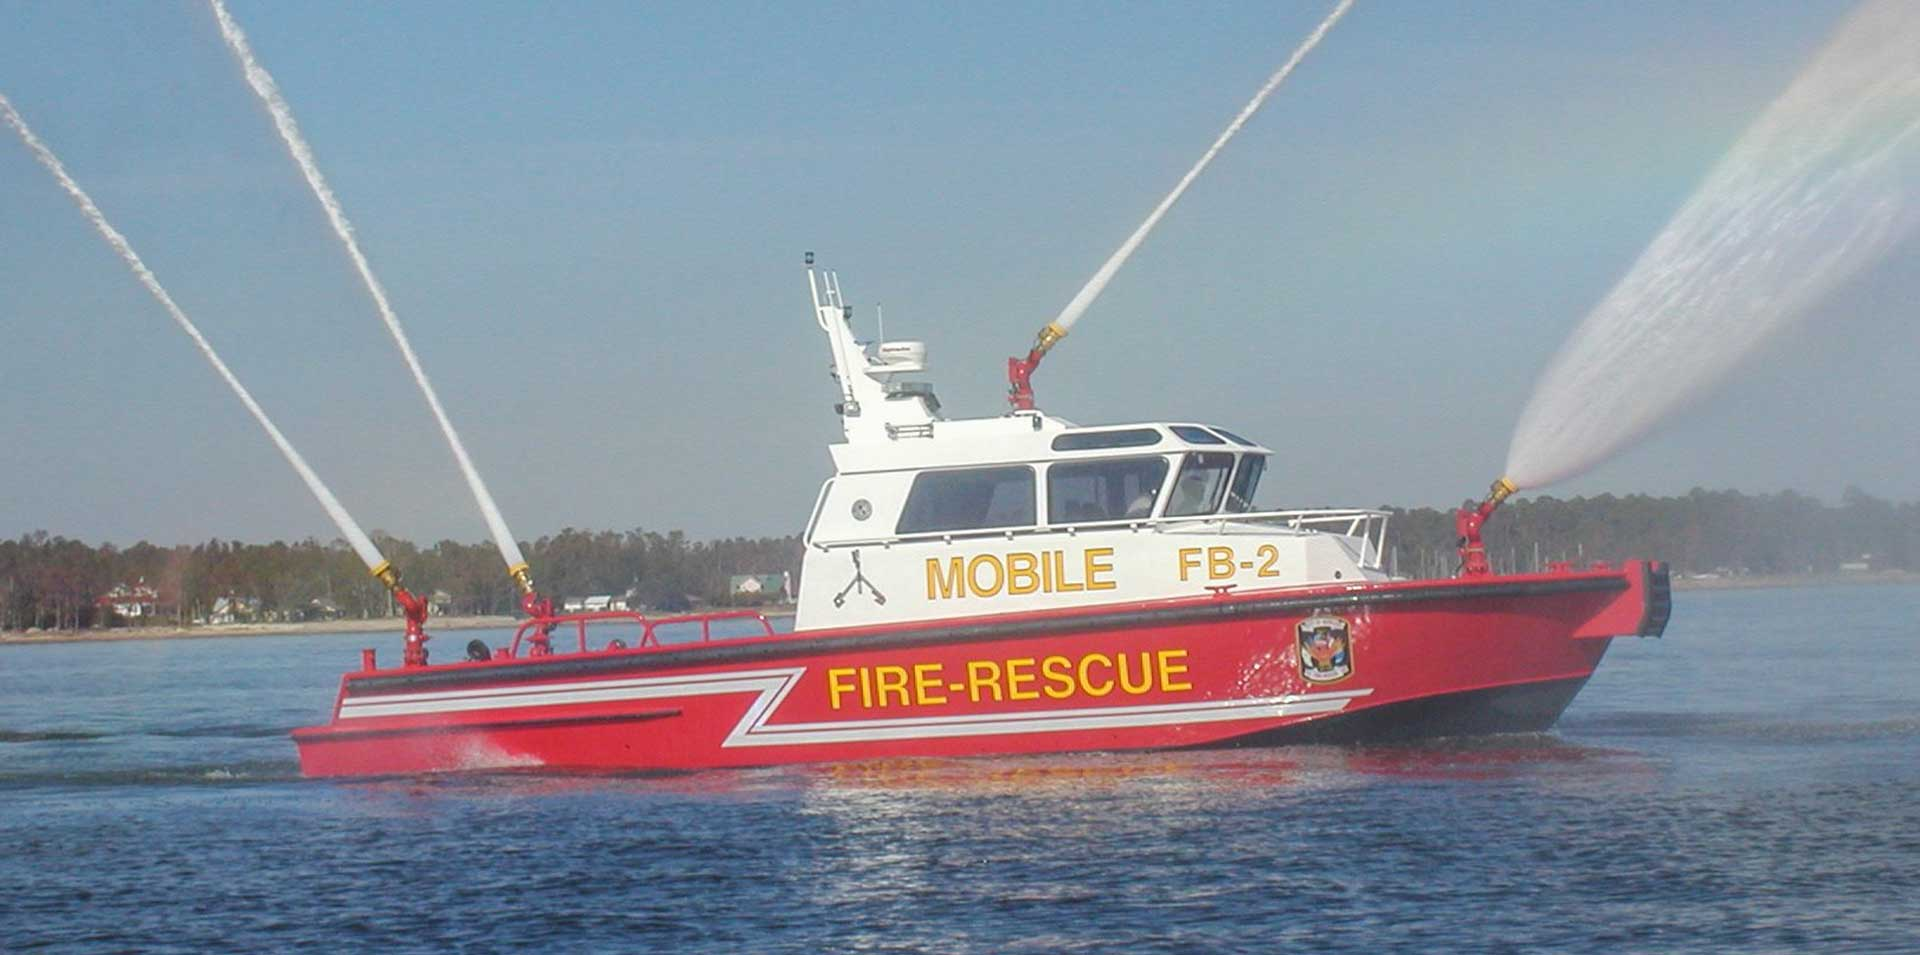 Silver Ships Mobile fire and rescue boat spraying all four hoses